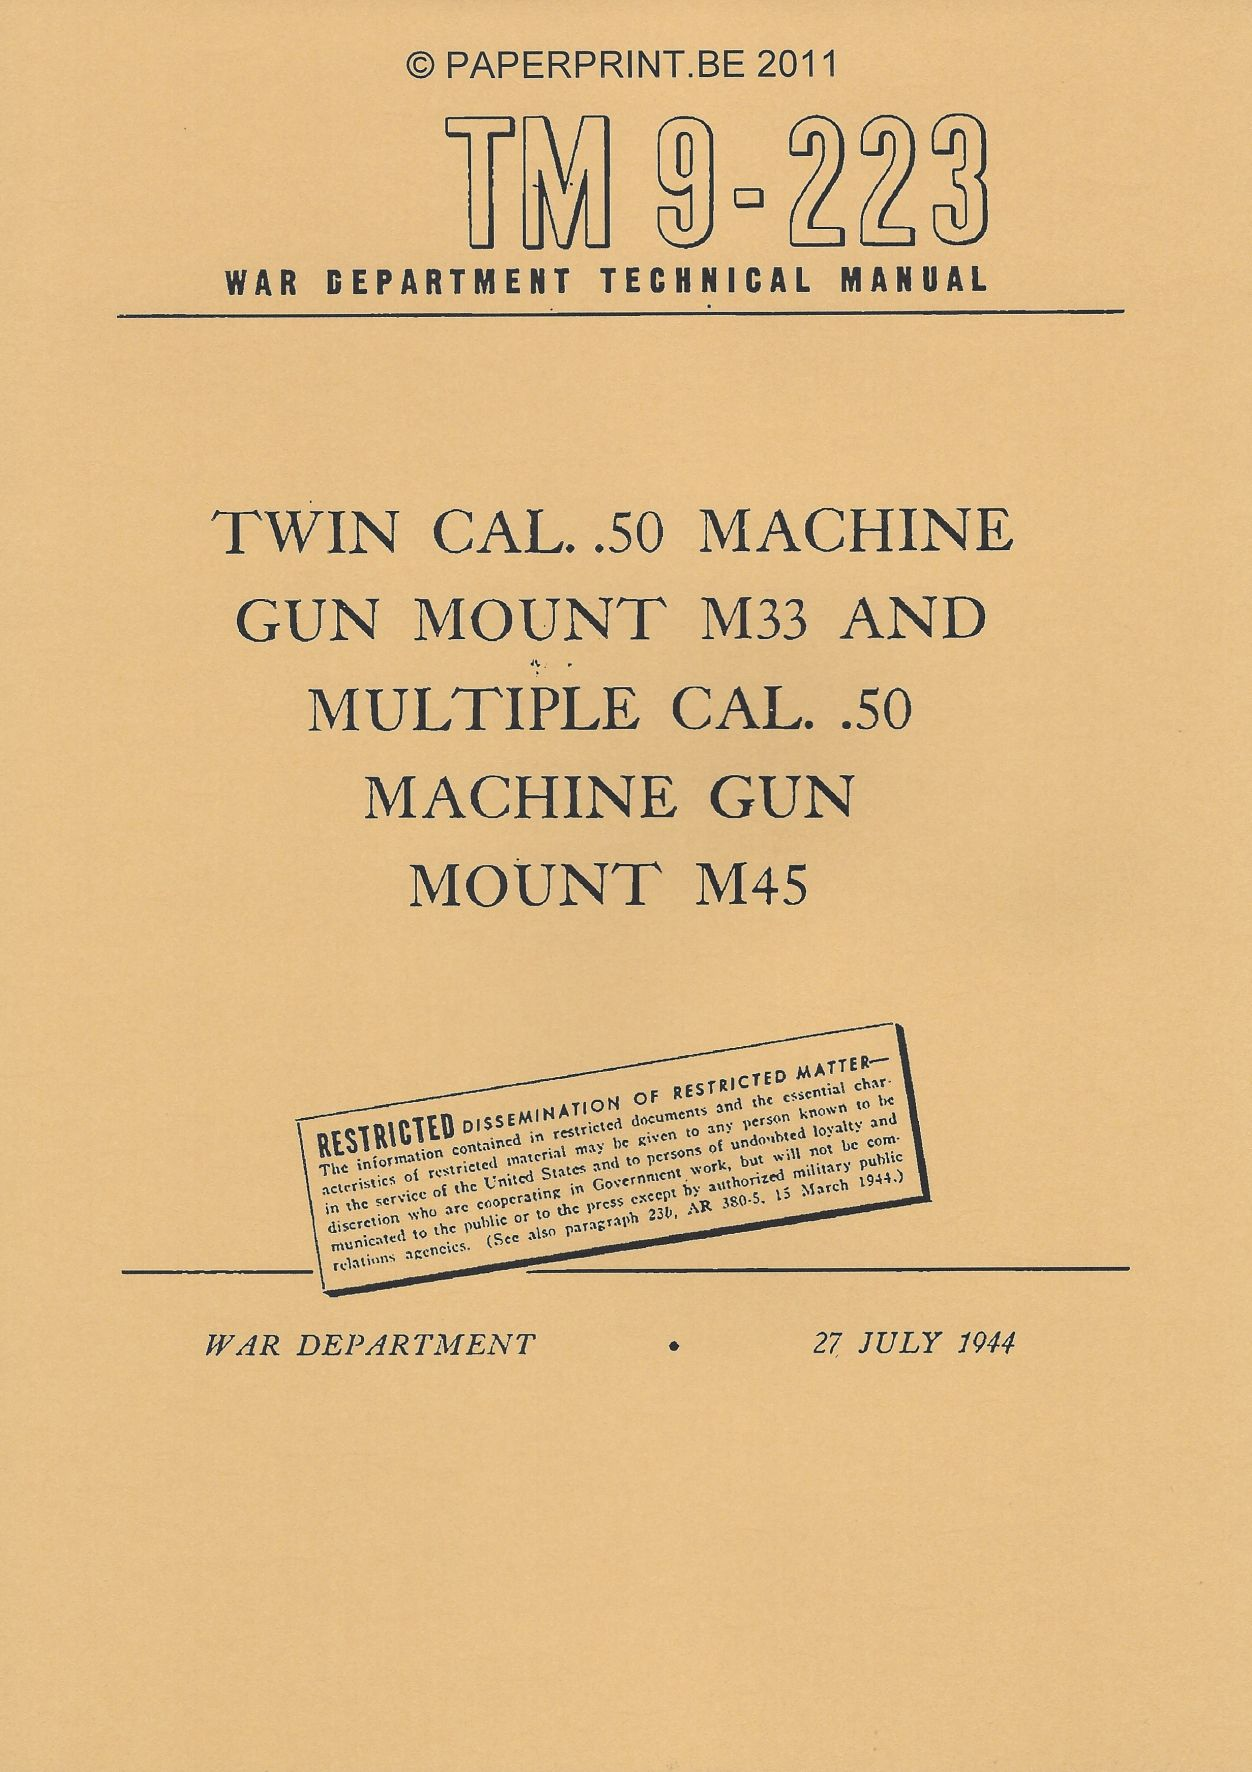 TM 9-223 US TWIN CAL. .50 MACHINE GUN MOUNT M33 AND MULTIPLE CAL. .50 MACHINE GUN MOUNT M45